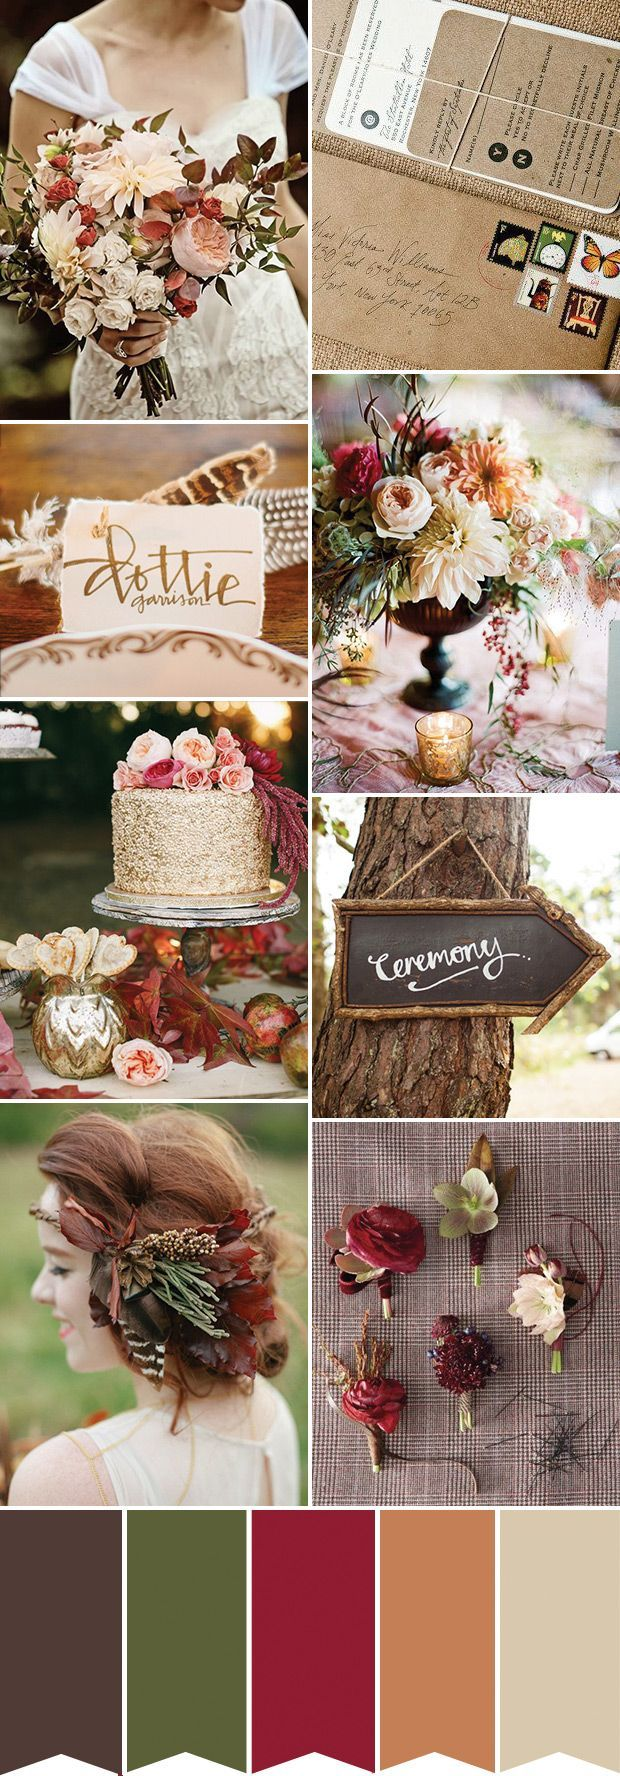 Rustic Chic Autumn and Fall Wedding Inspiration | see how to create this look over on http://www.onefabday.com